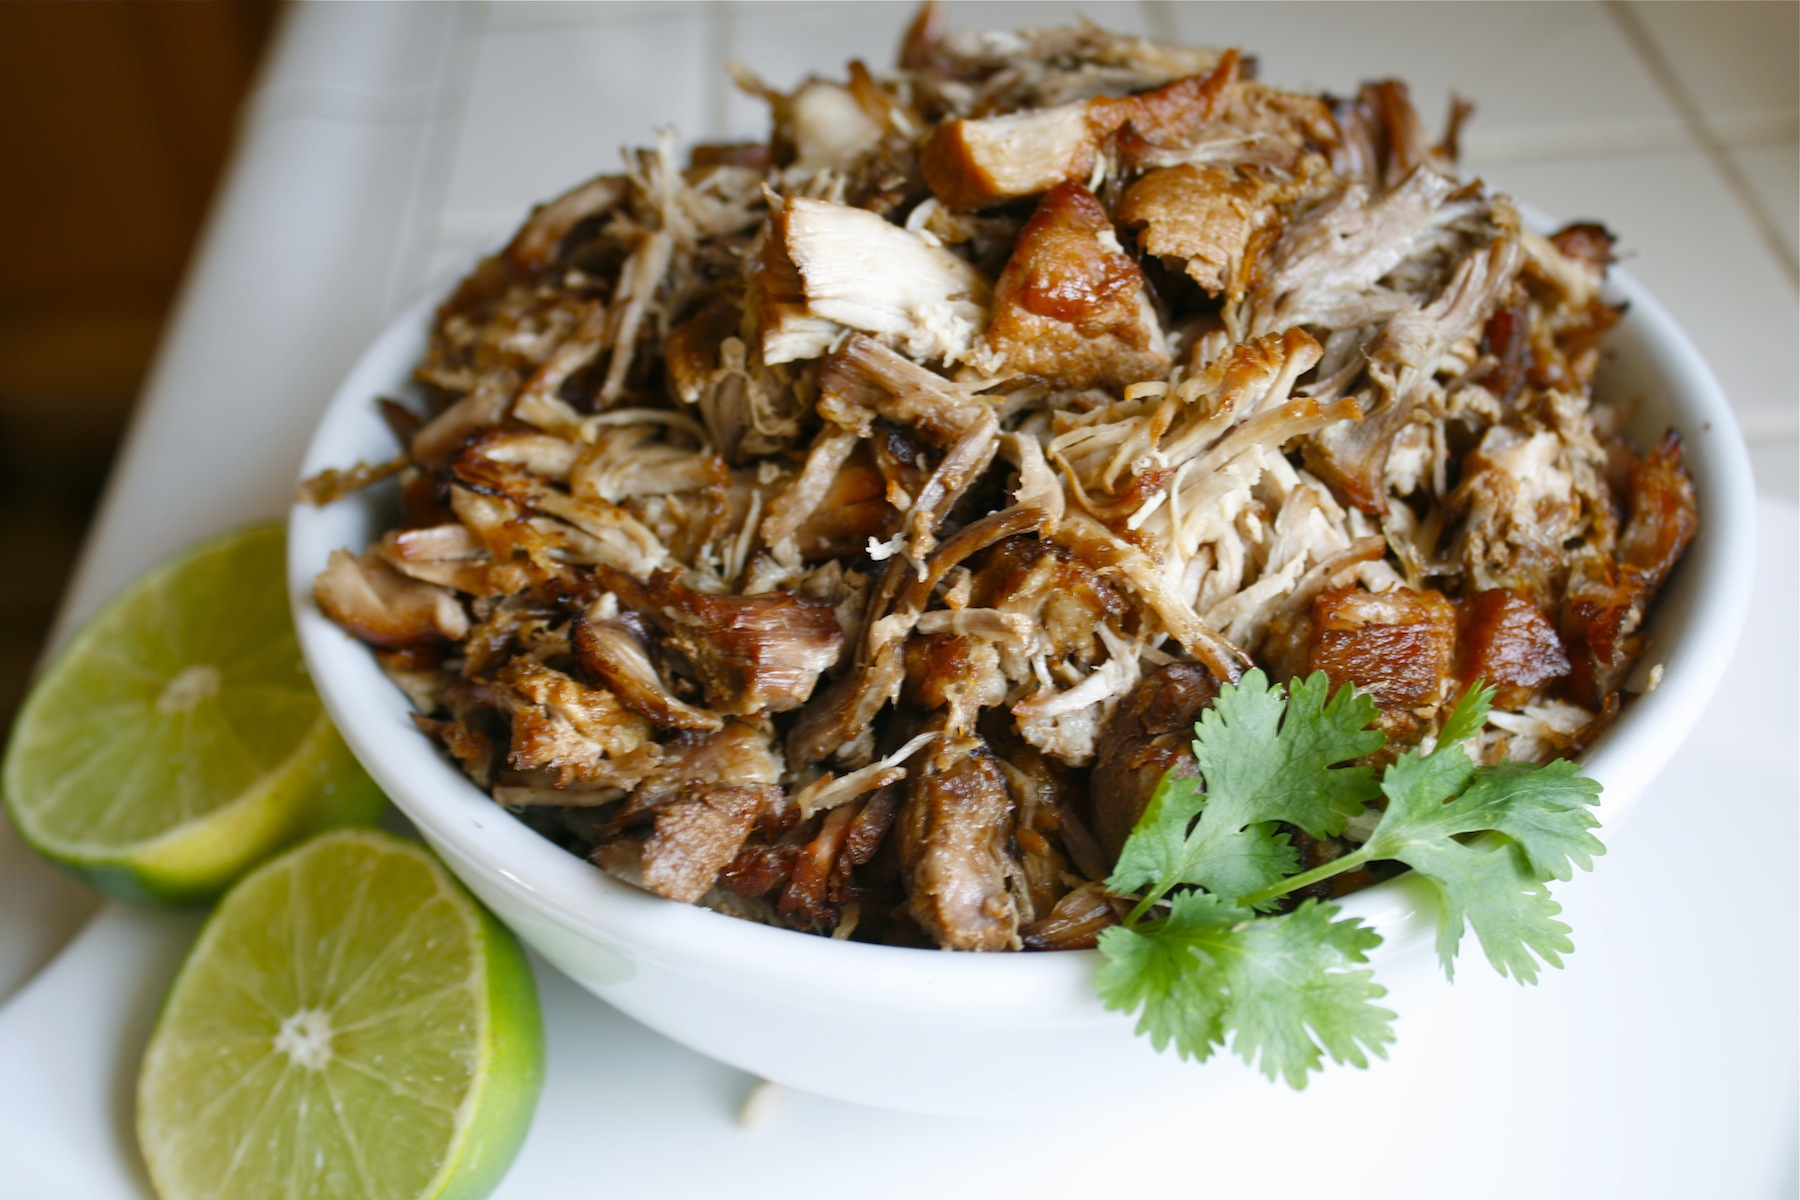 ... in tacos, burritos, tamales or tortas. Carnitas are simply the best